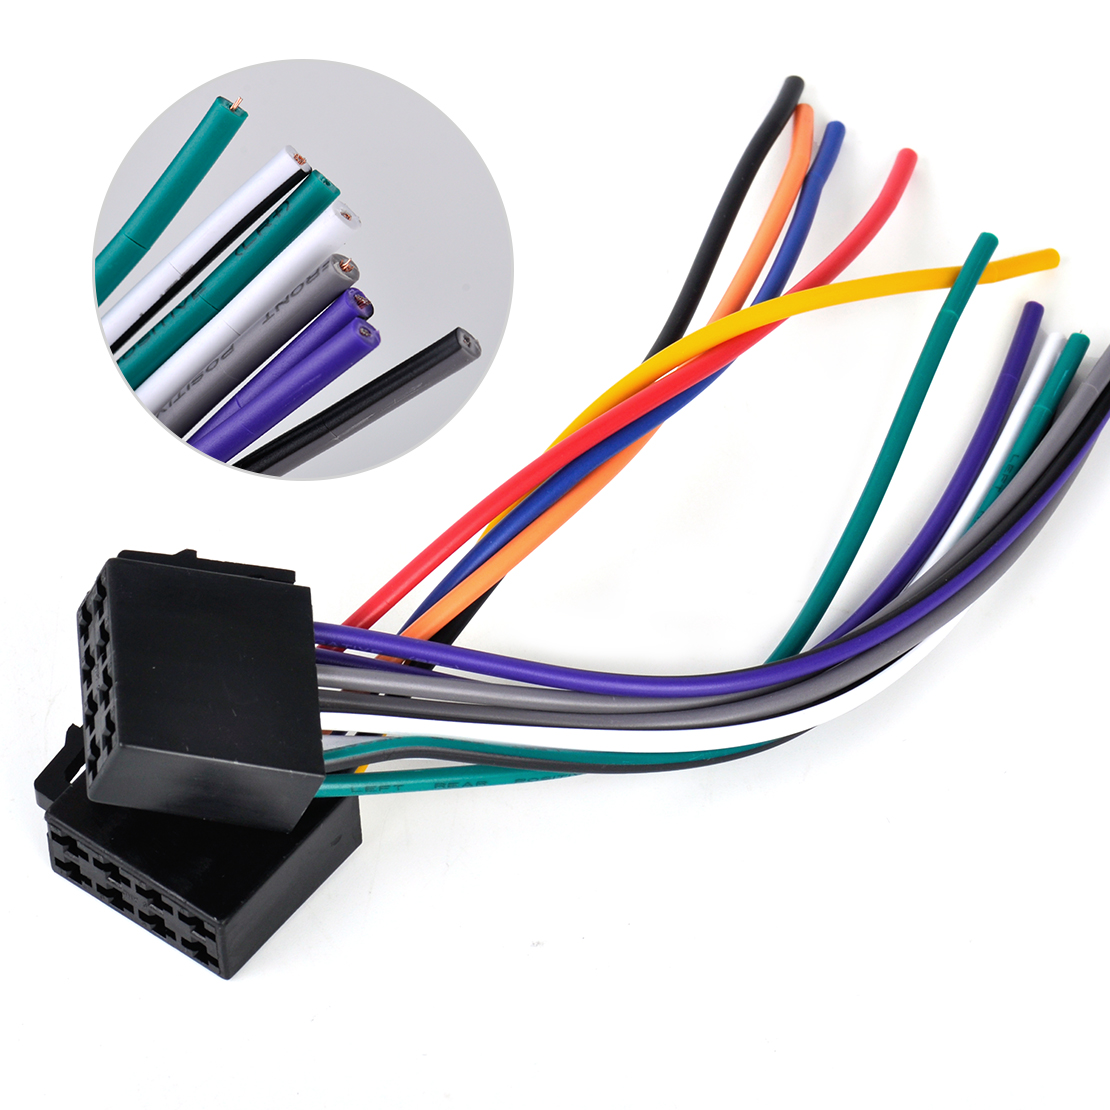 1 universal car stereo radio female iso plug adapter wiring harness universal wiring harness connector at gsmx.co